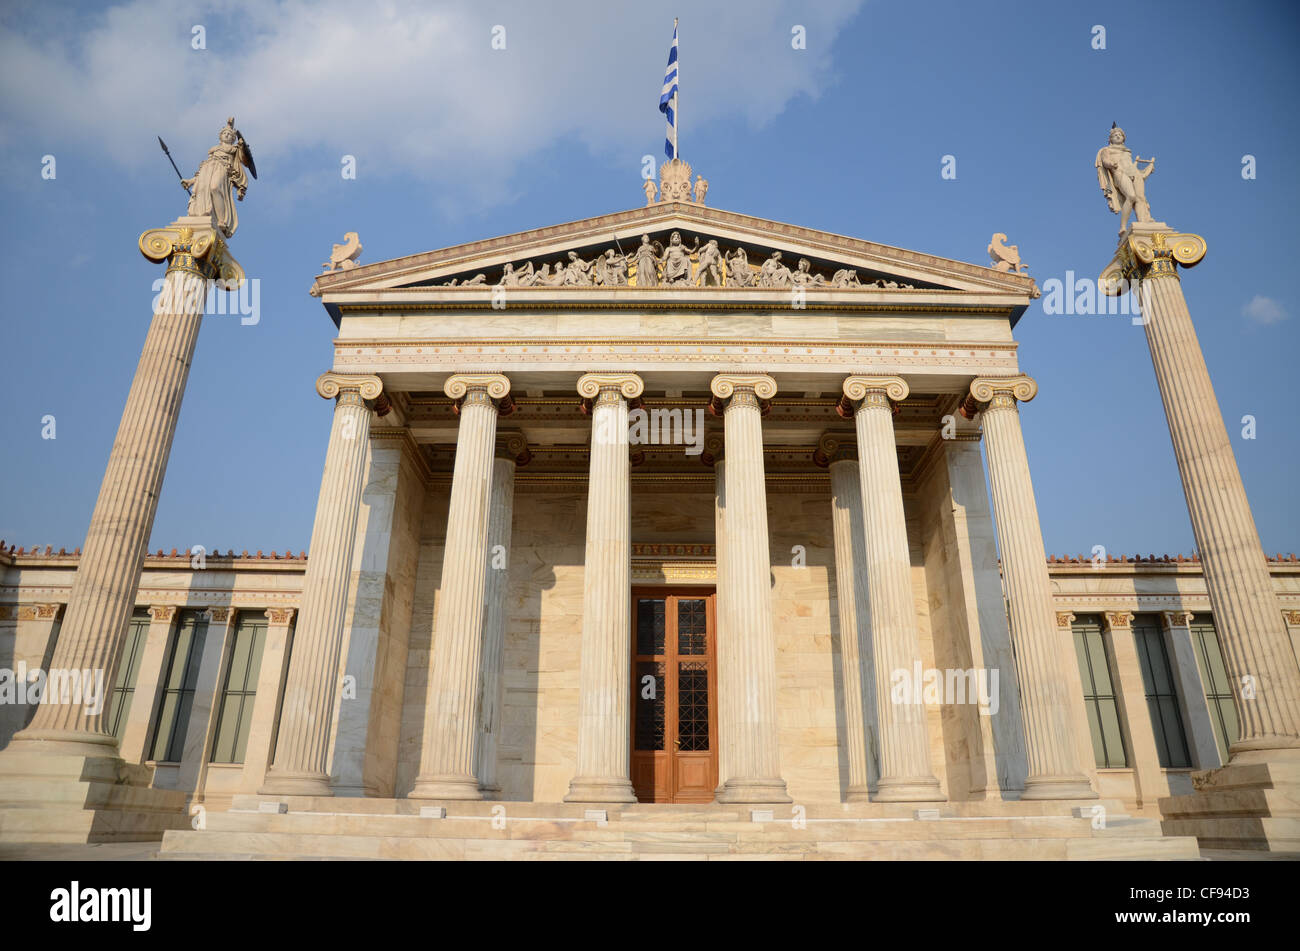 Frontal view of the Academy of Athens, Greece - Stock Image